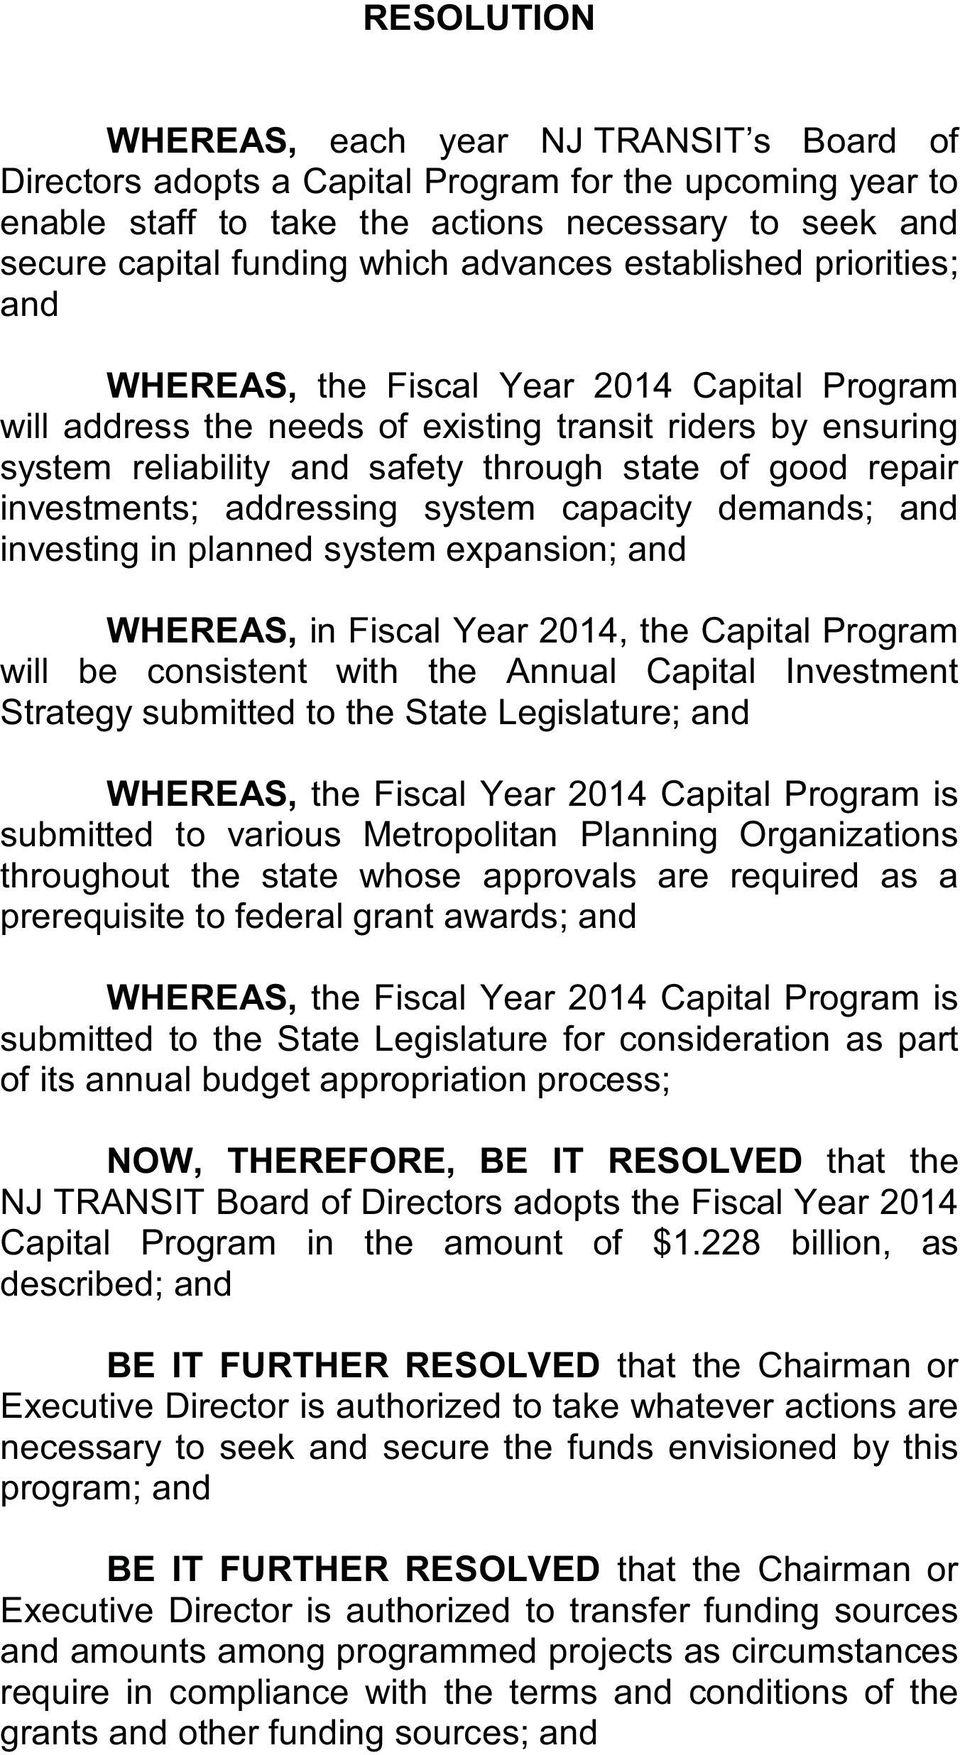 repair investments; addressing system capacity demands; and investing in planned system expansion; and WHEREAS, in Fiscal Year 2014, the Capital Program will be consistent with the Annual Capital